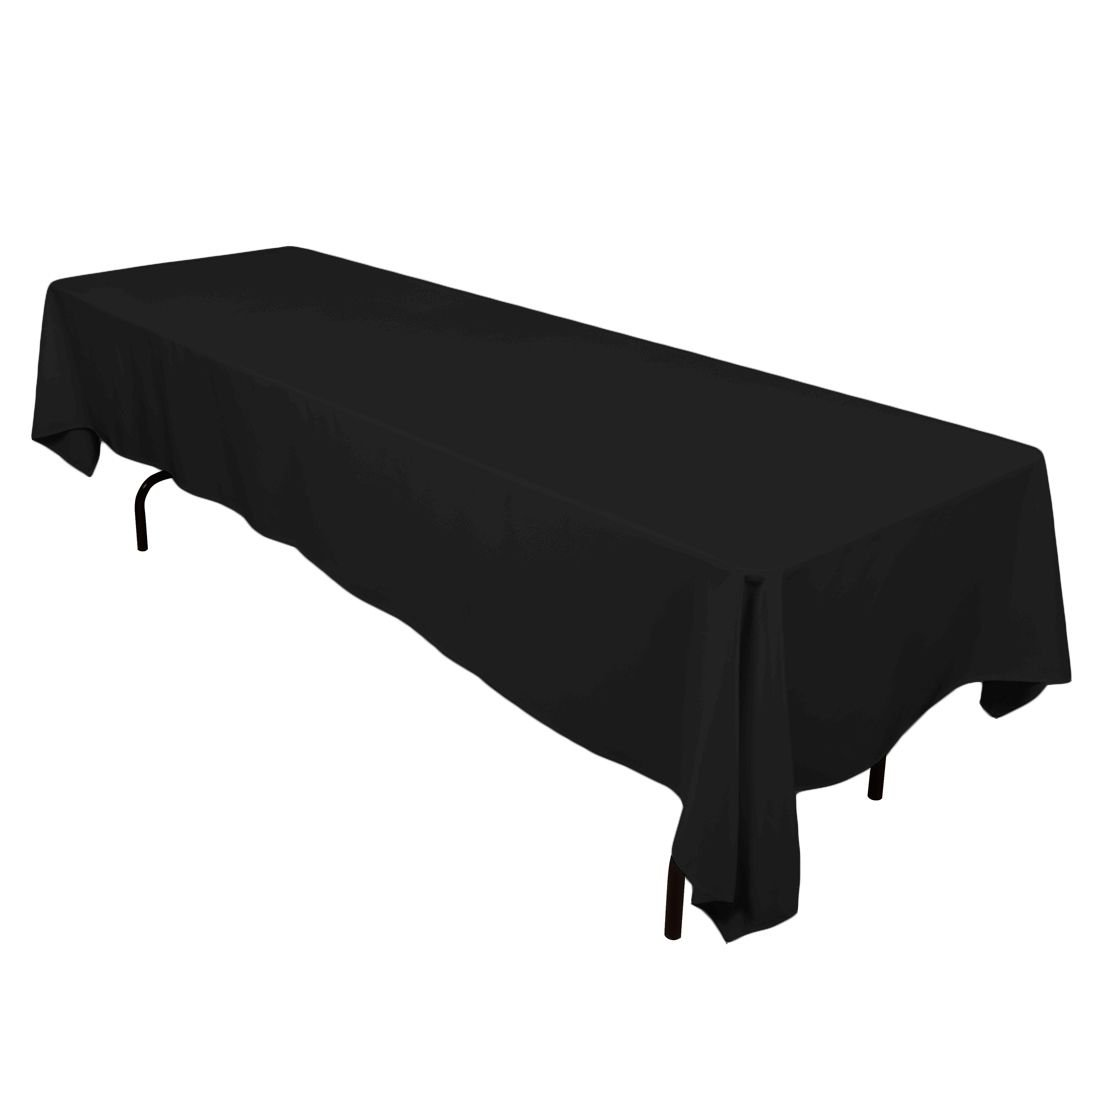 LinenTablecloth 60 x 126-Inch Rectangular Polyester Tablecloth Black 60126-010111